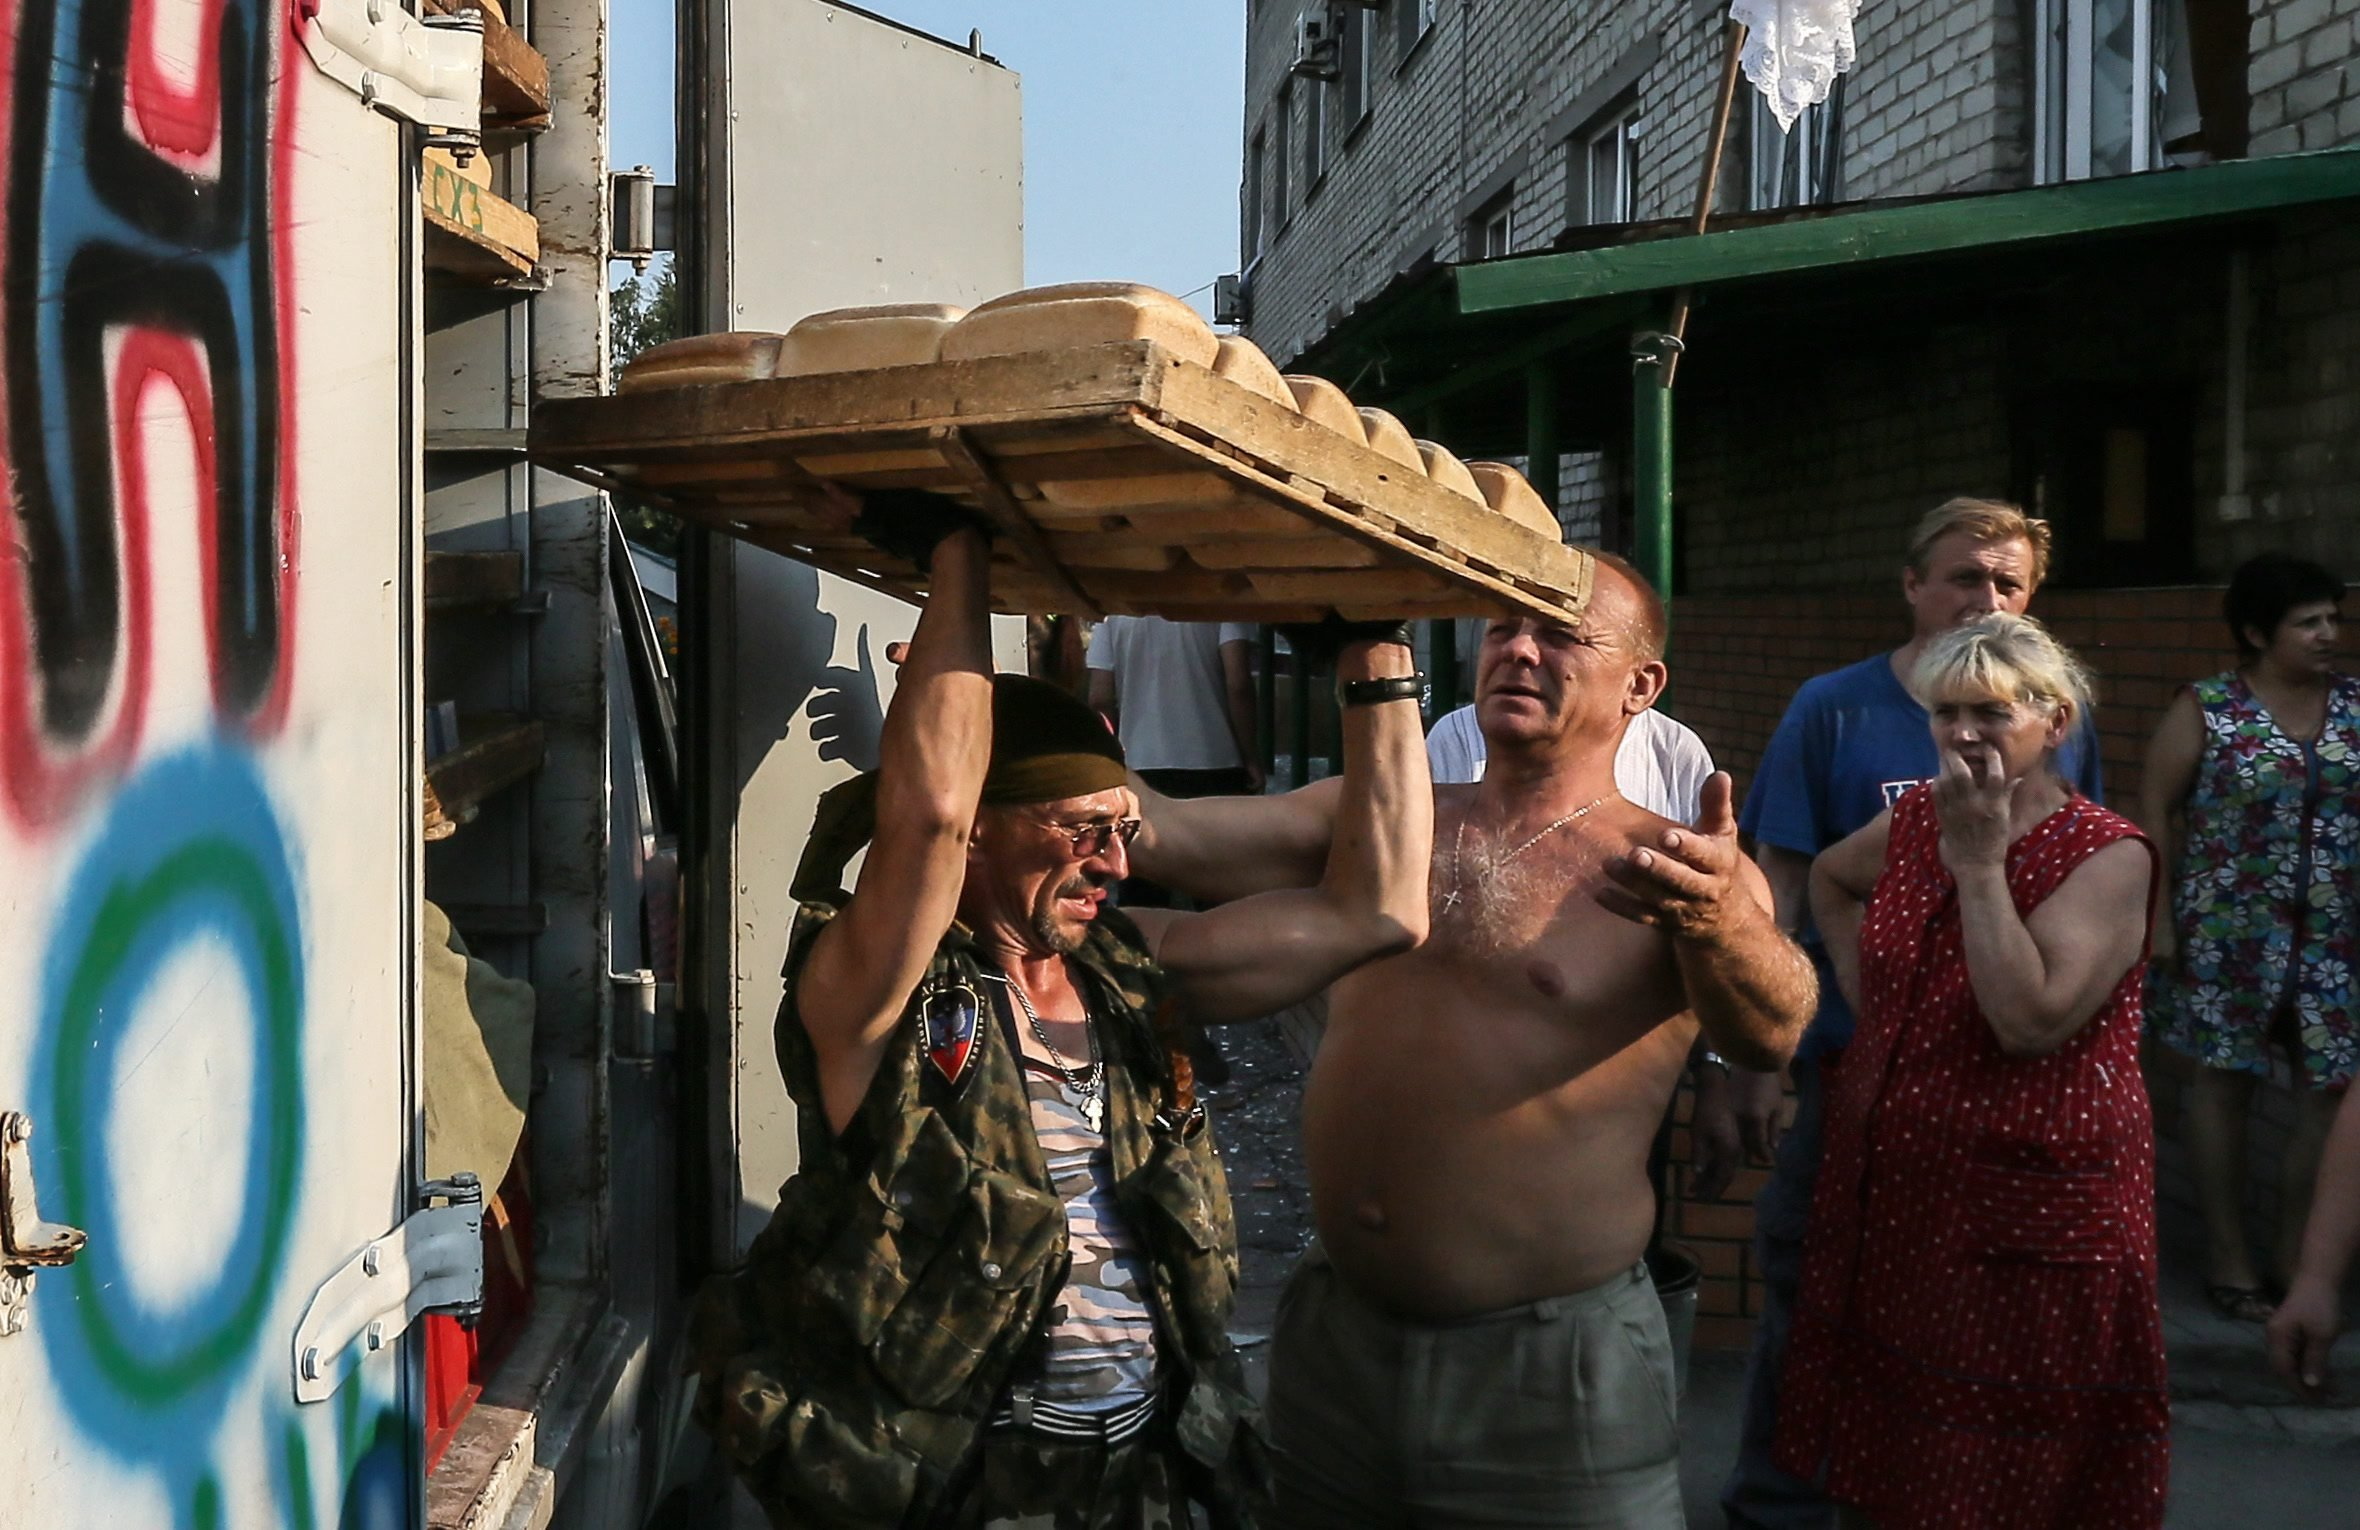 Member of the Donetsk People's Republic militias carry trays with bread for locals hiding in shelters in Ilovaysk 50km from Donetsk, Ukraine on August 14, 2014.